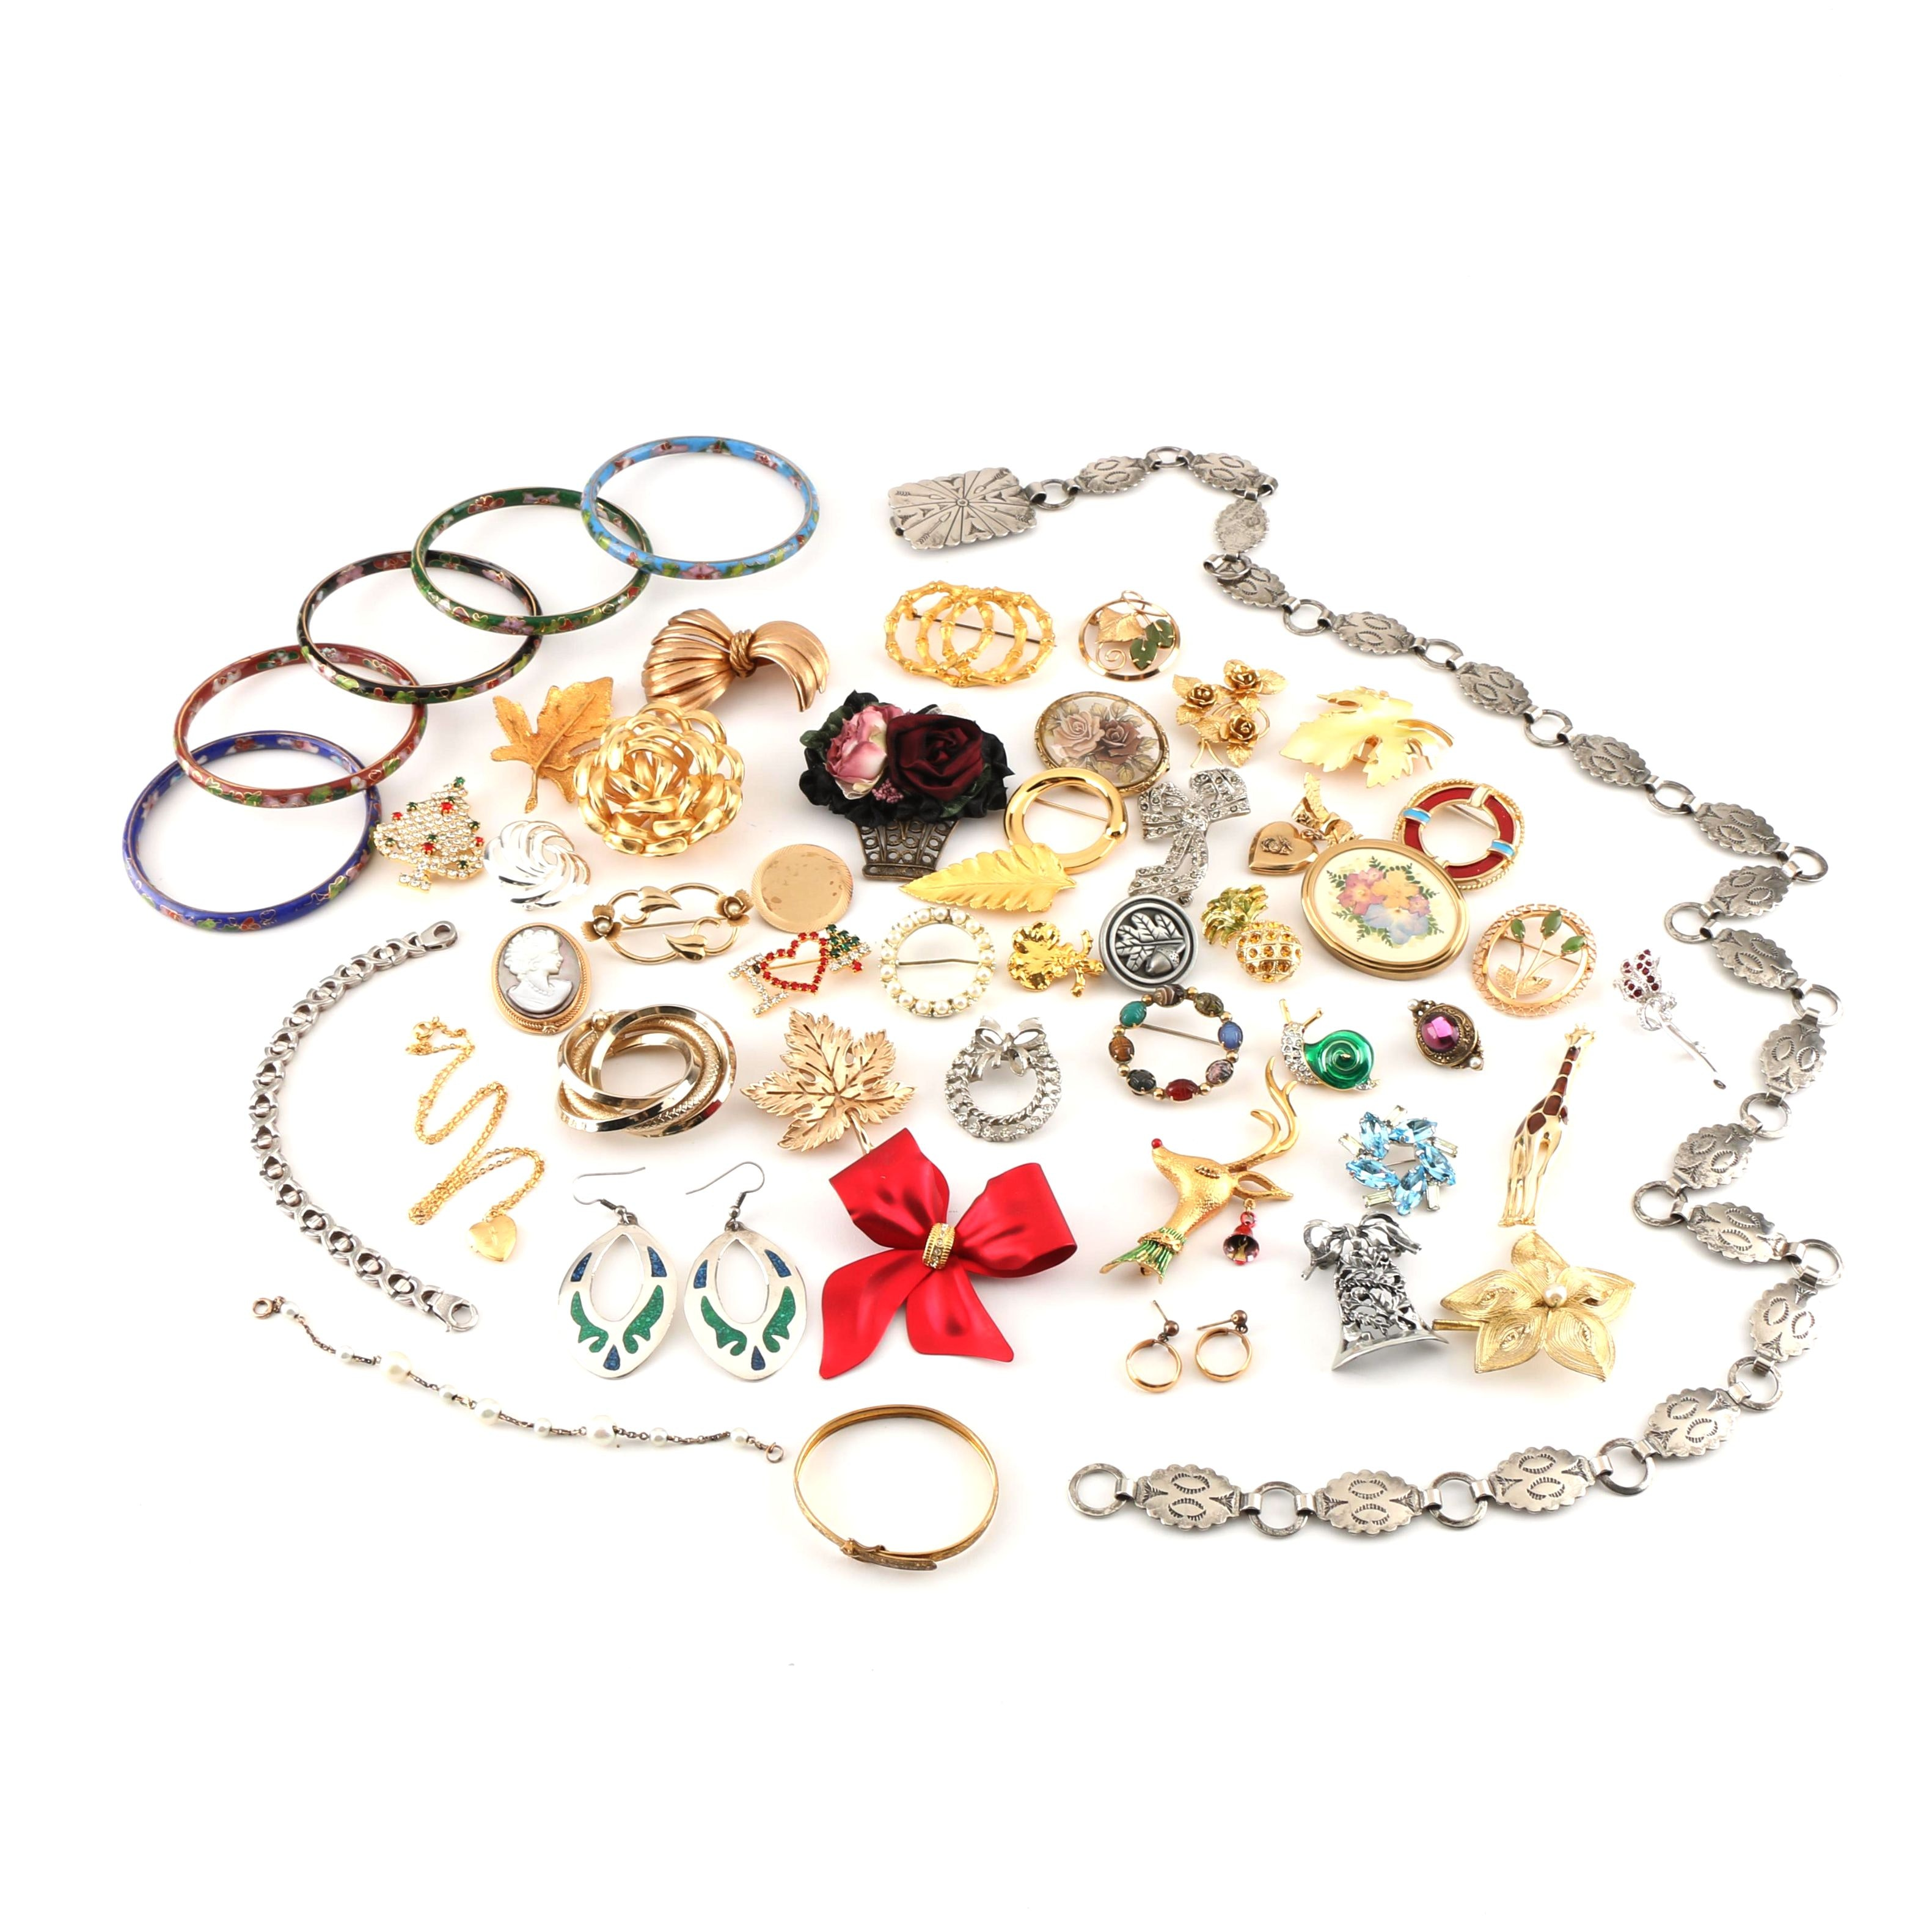 Assortment of Costume Jewelry Including Designer Pieces